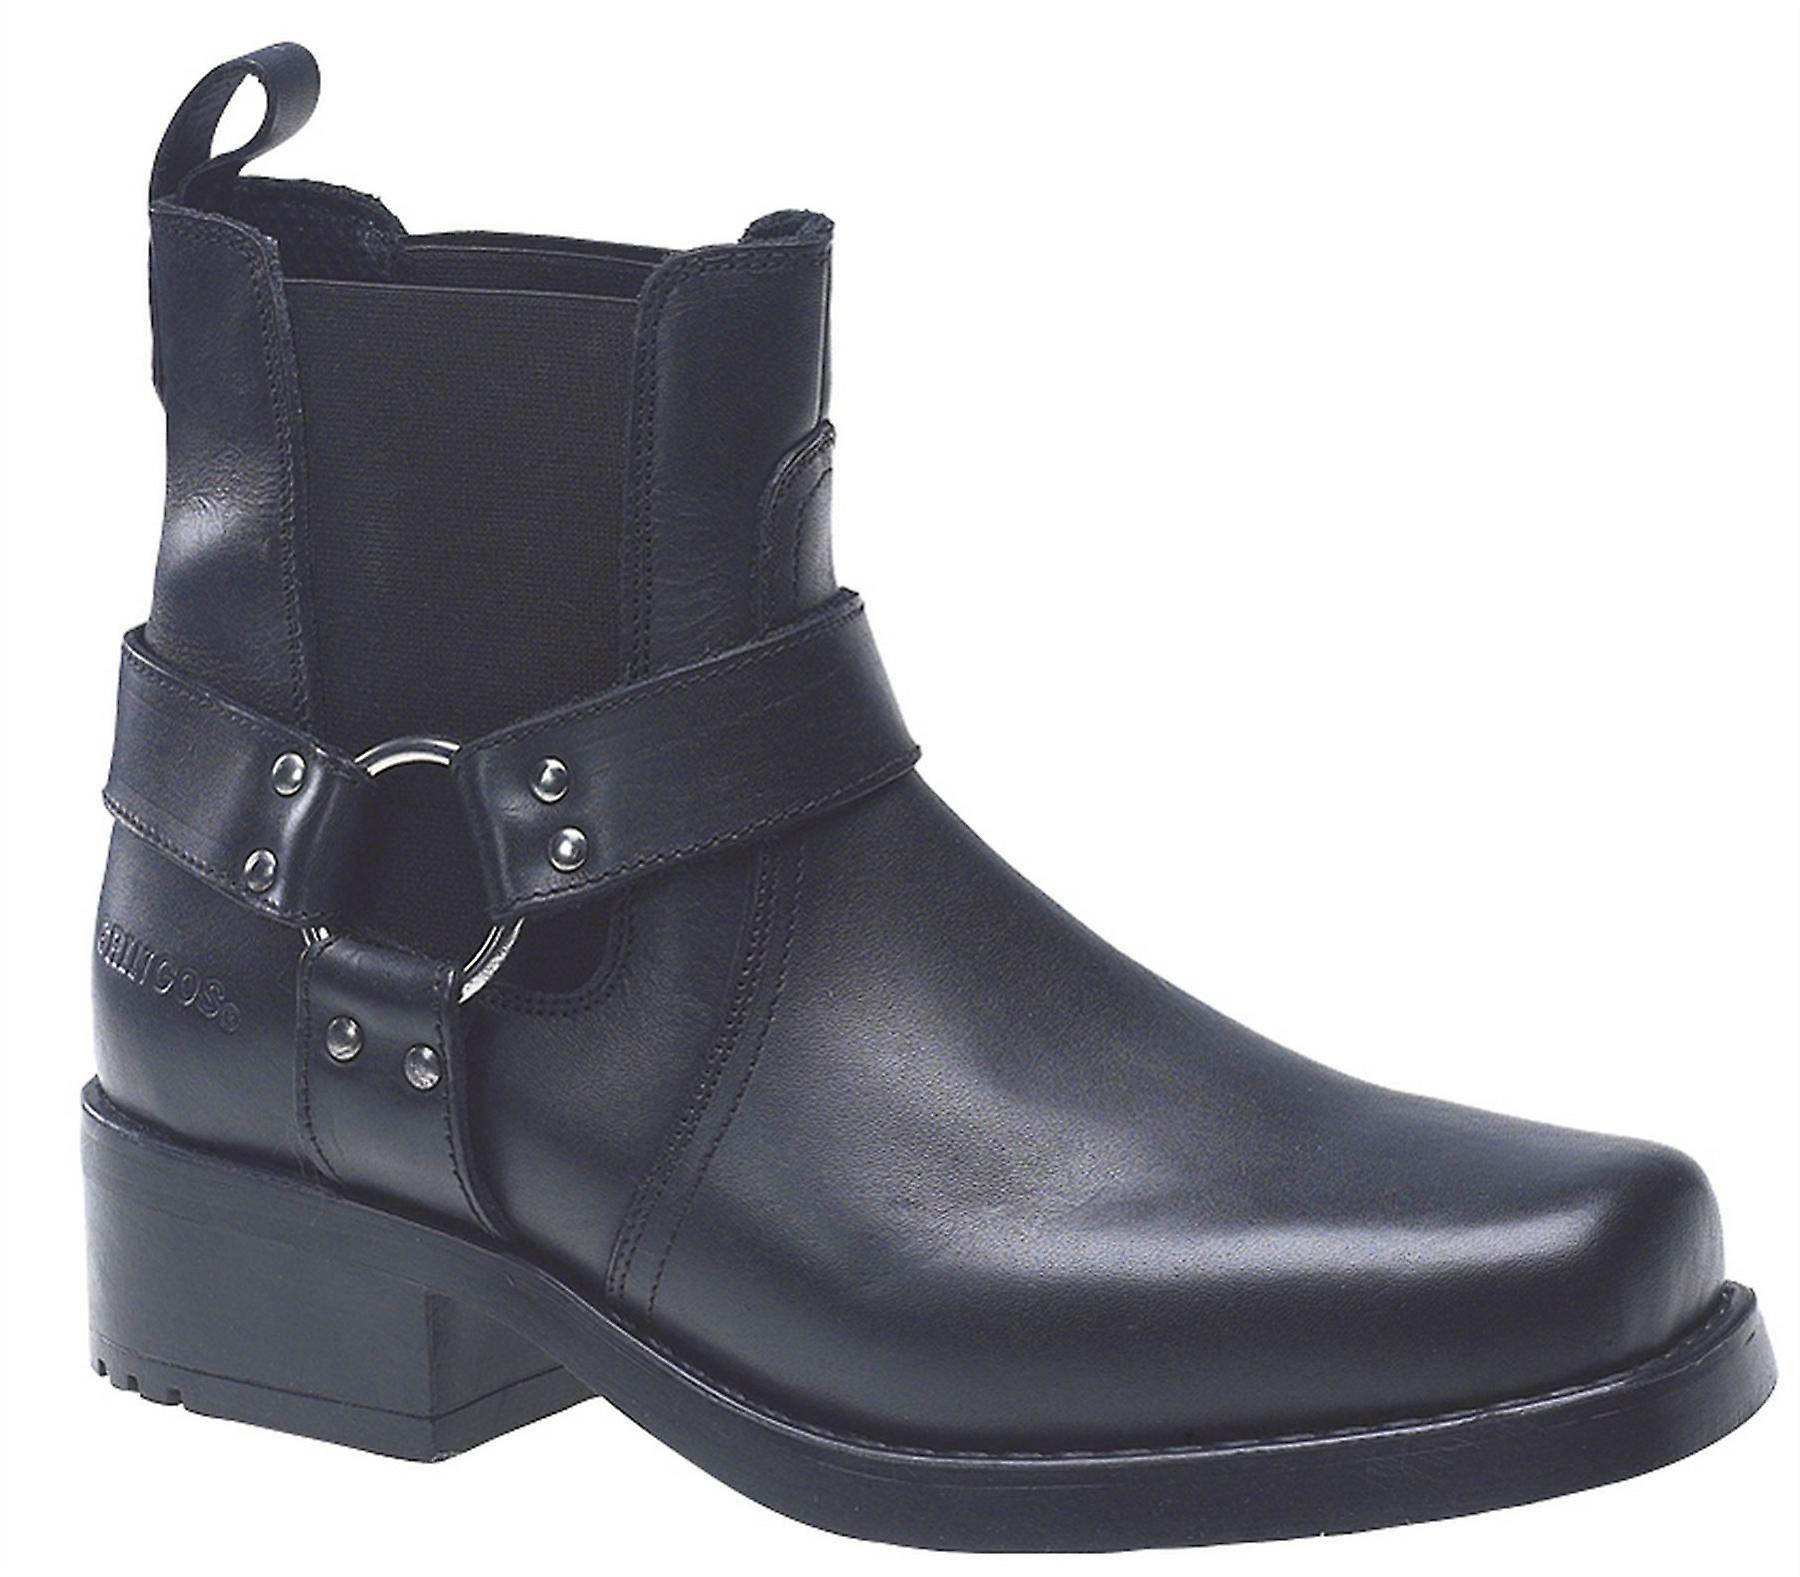 Mens Leather Slip On Gusset Gusset Gusset Harness Square Toe Ankle Biker Boots Shoes 94bbb2